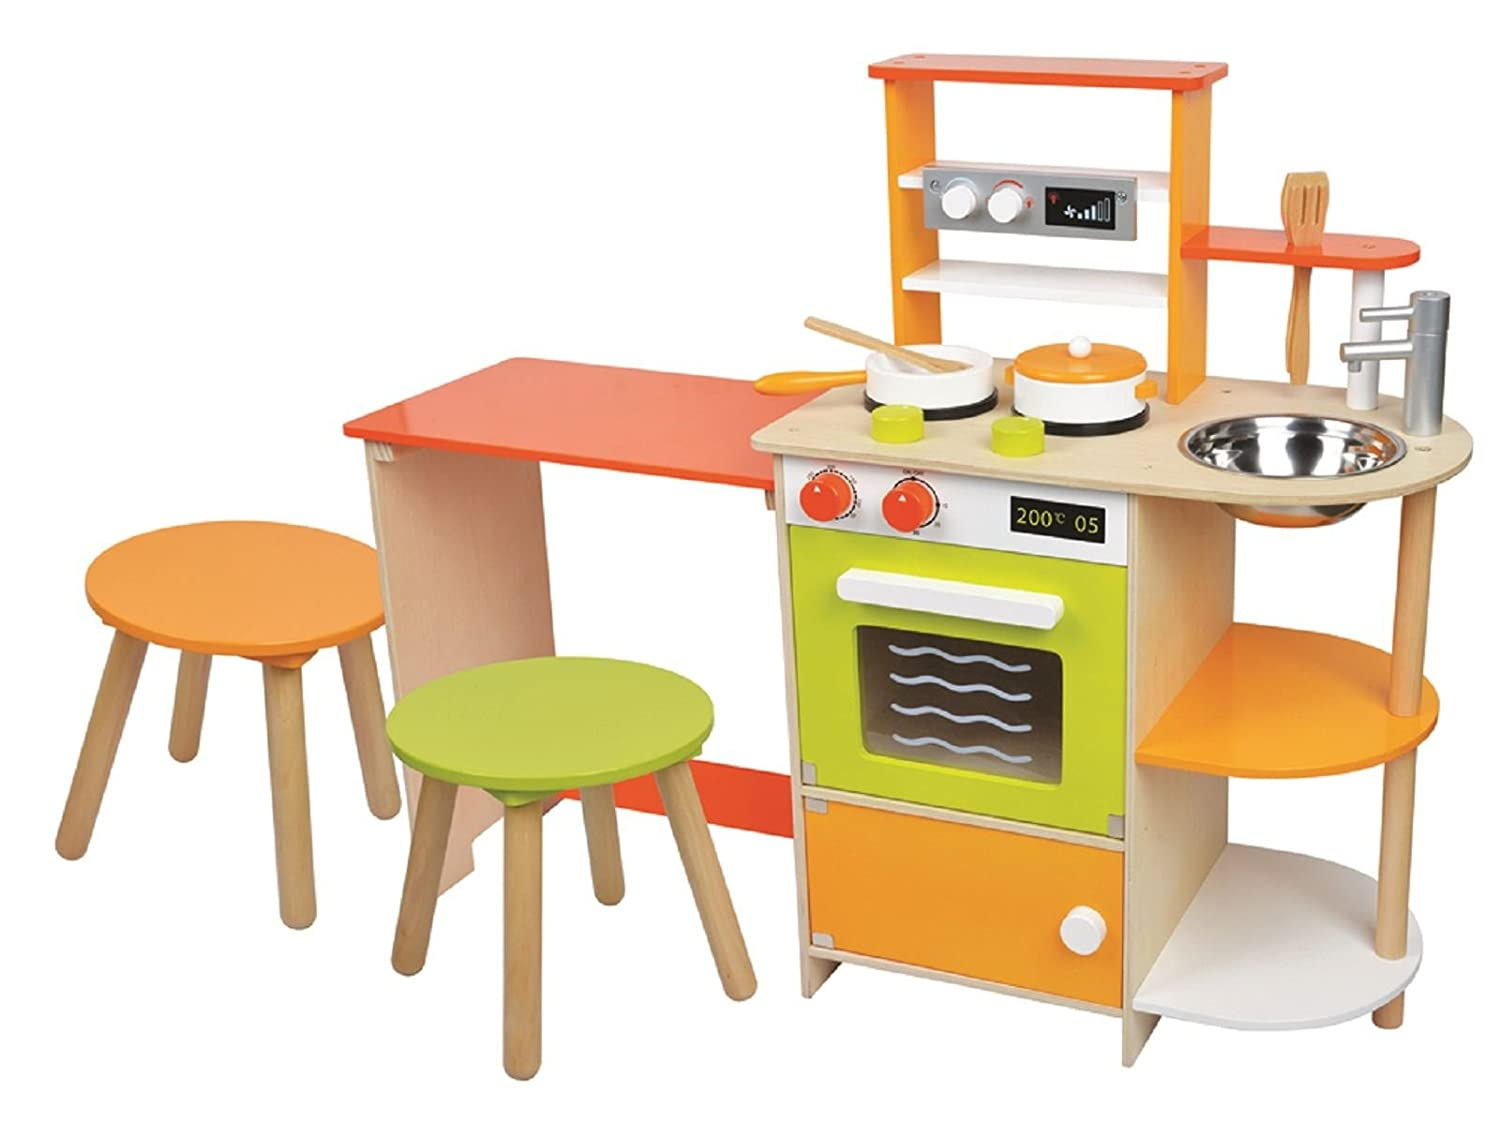 Lelin Wooden Childrens 2 In 1 Pretend Play Kitchen And Dining Room Set:  Amazon.co.uk: Toys U0026 Games